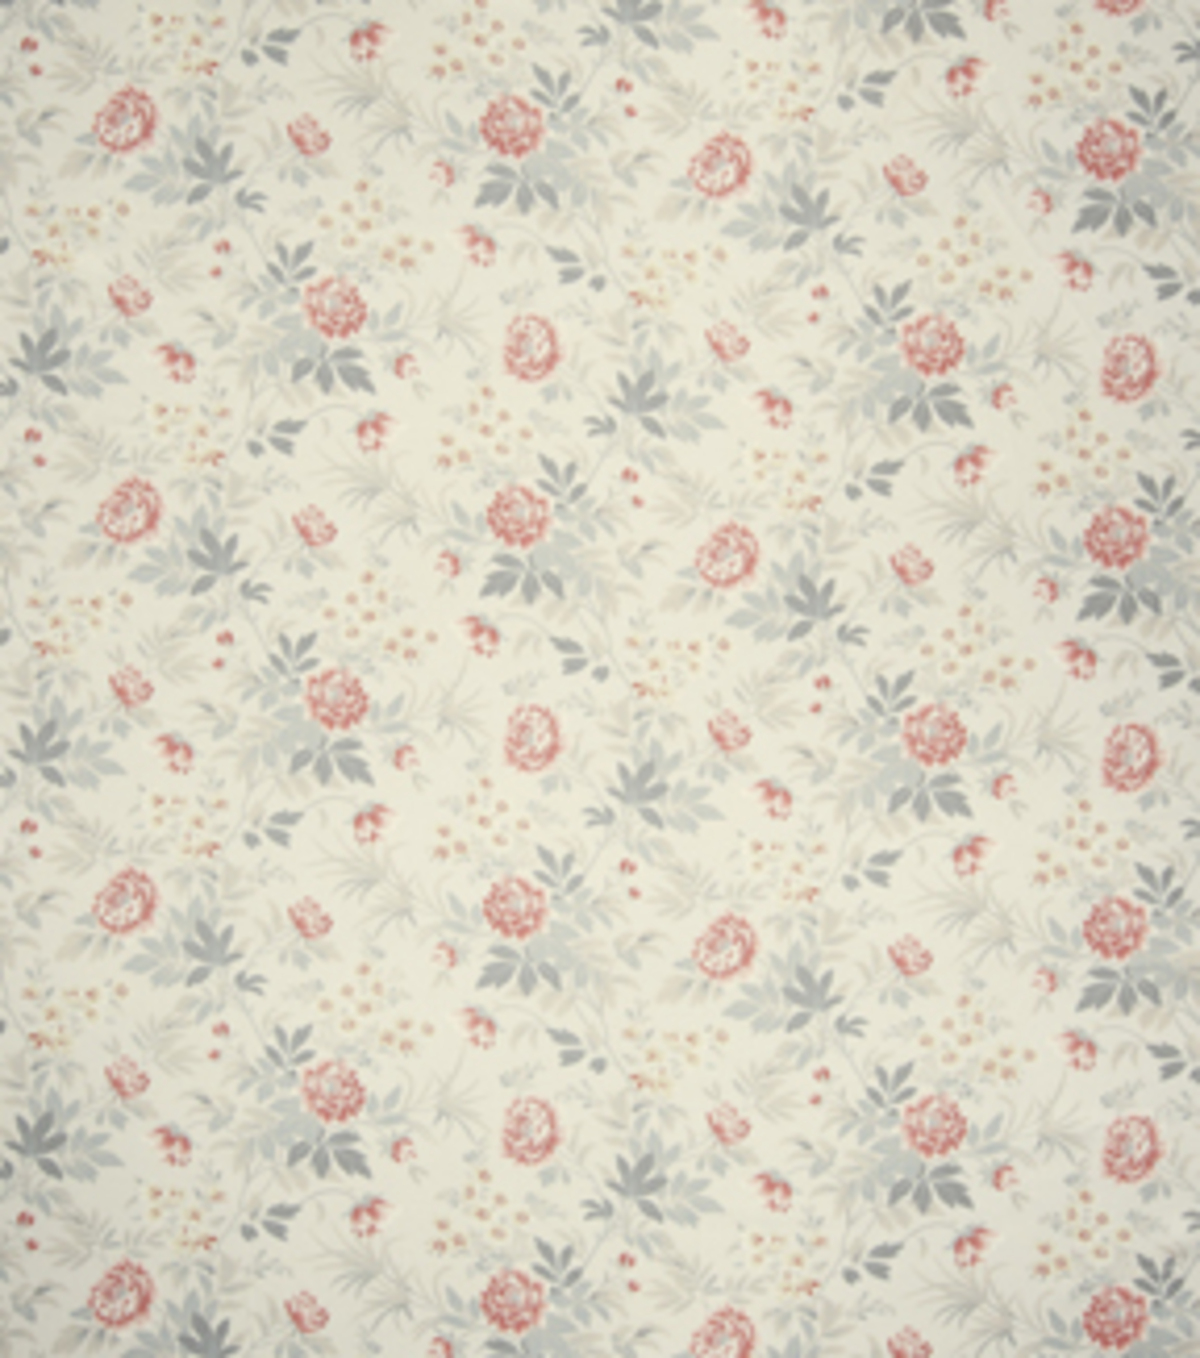 Home Decor 8\u0022x8\u0022 Fabric Swatch-French General Comedy Rose